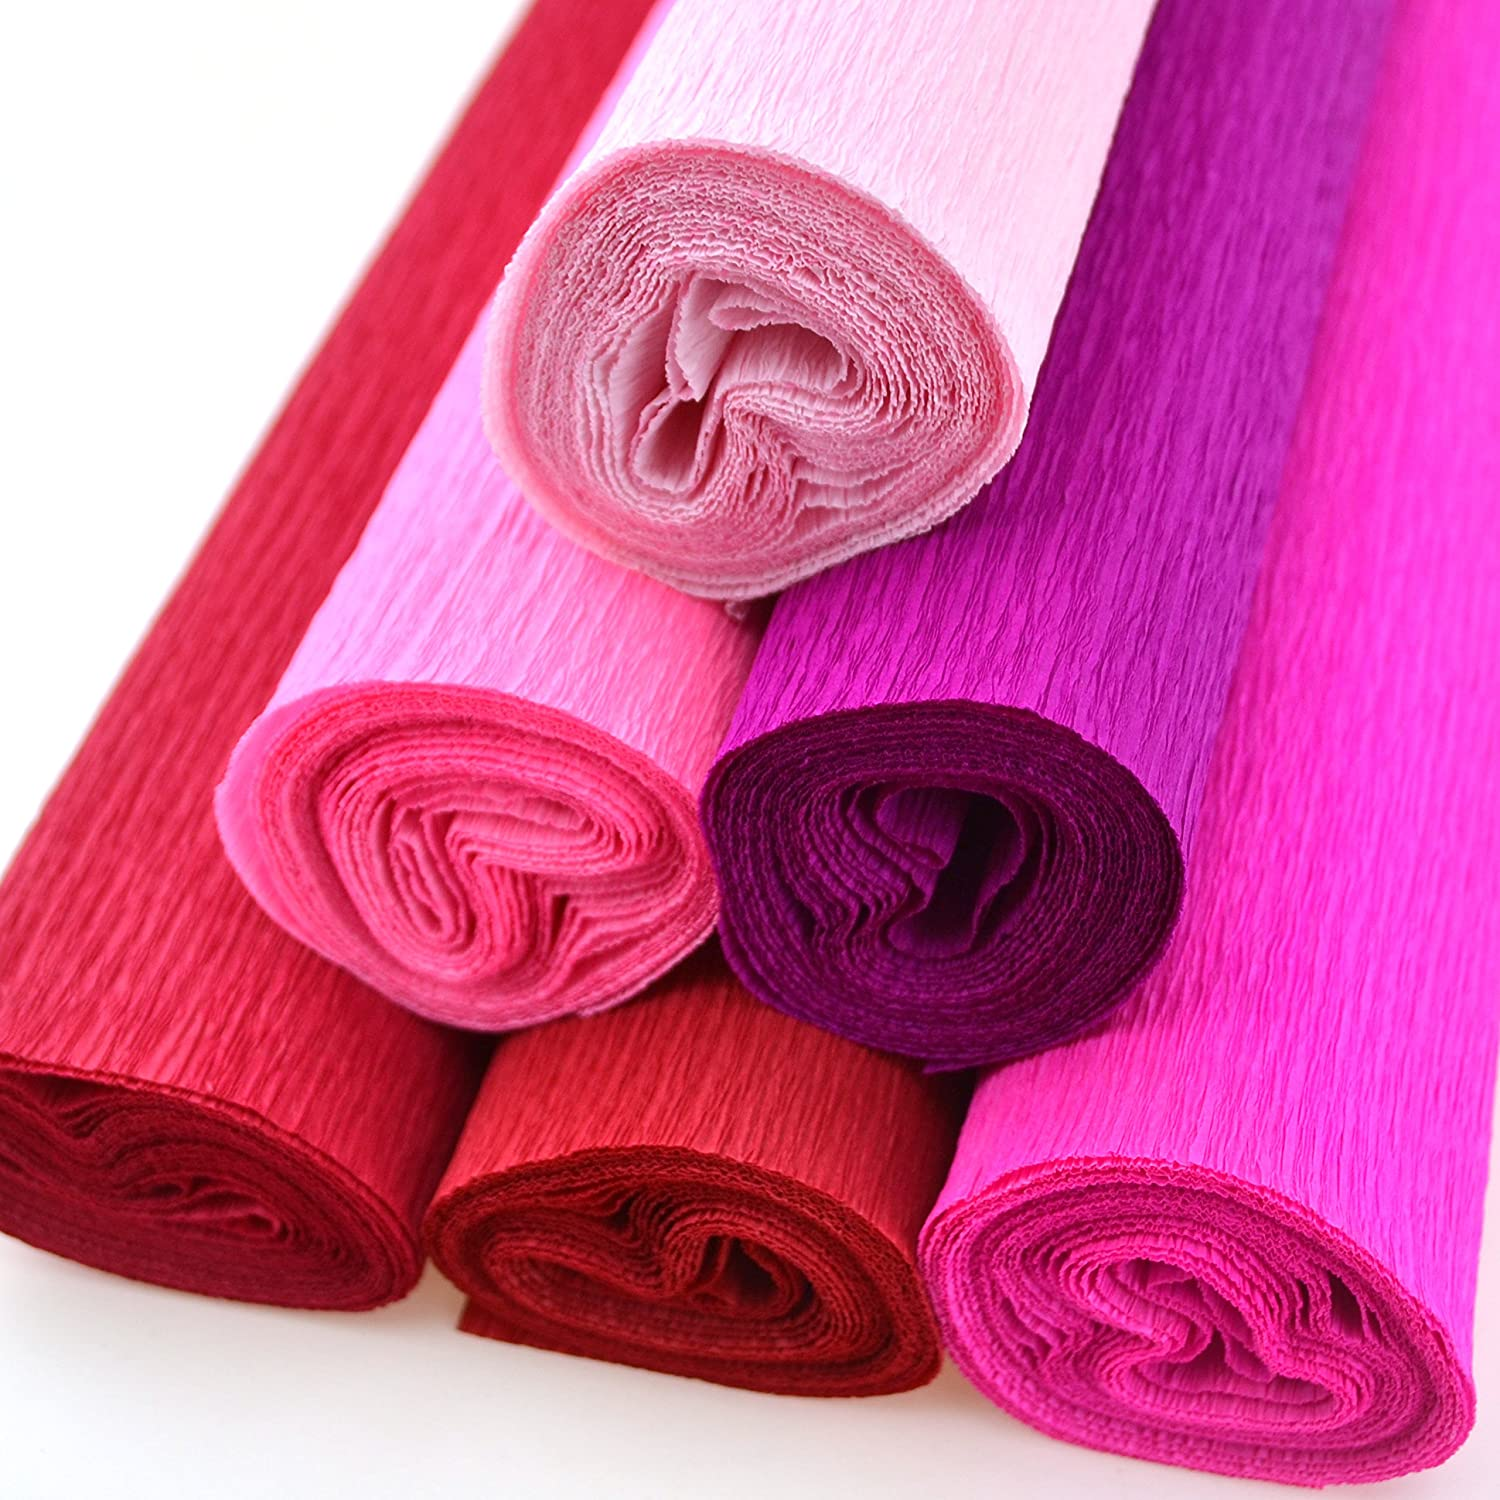 Star Packing Best Crepe Paper Roll 20 inches wide x 8ft long | 42 colors available 13.5 Square Feet pack (6 Rolls, Shades of Red and Pink)